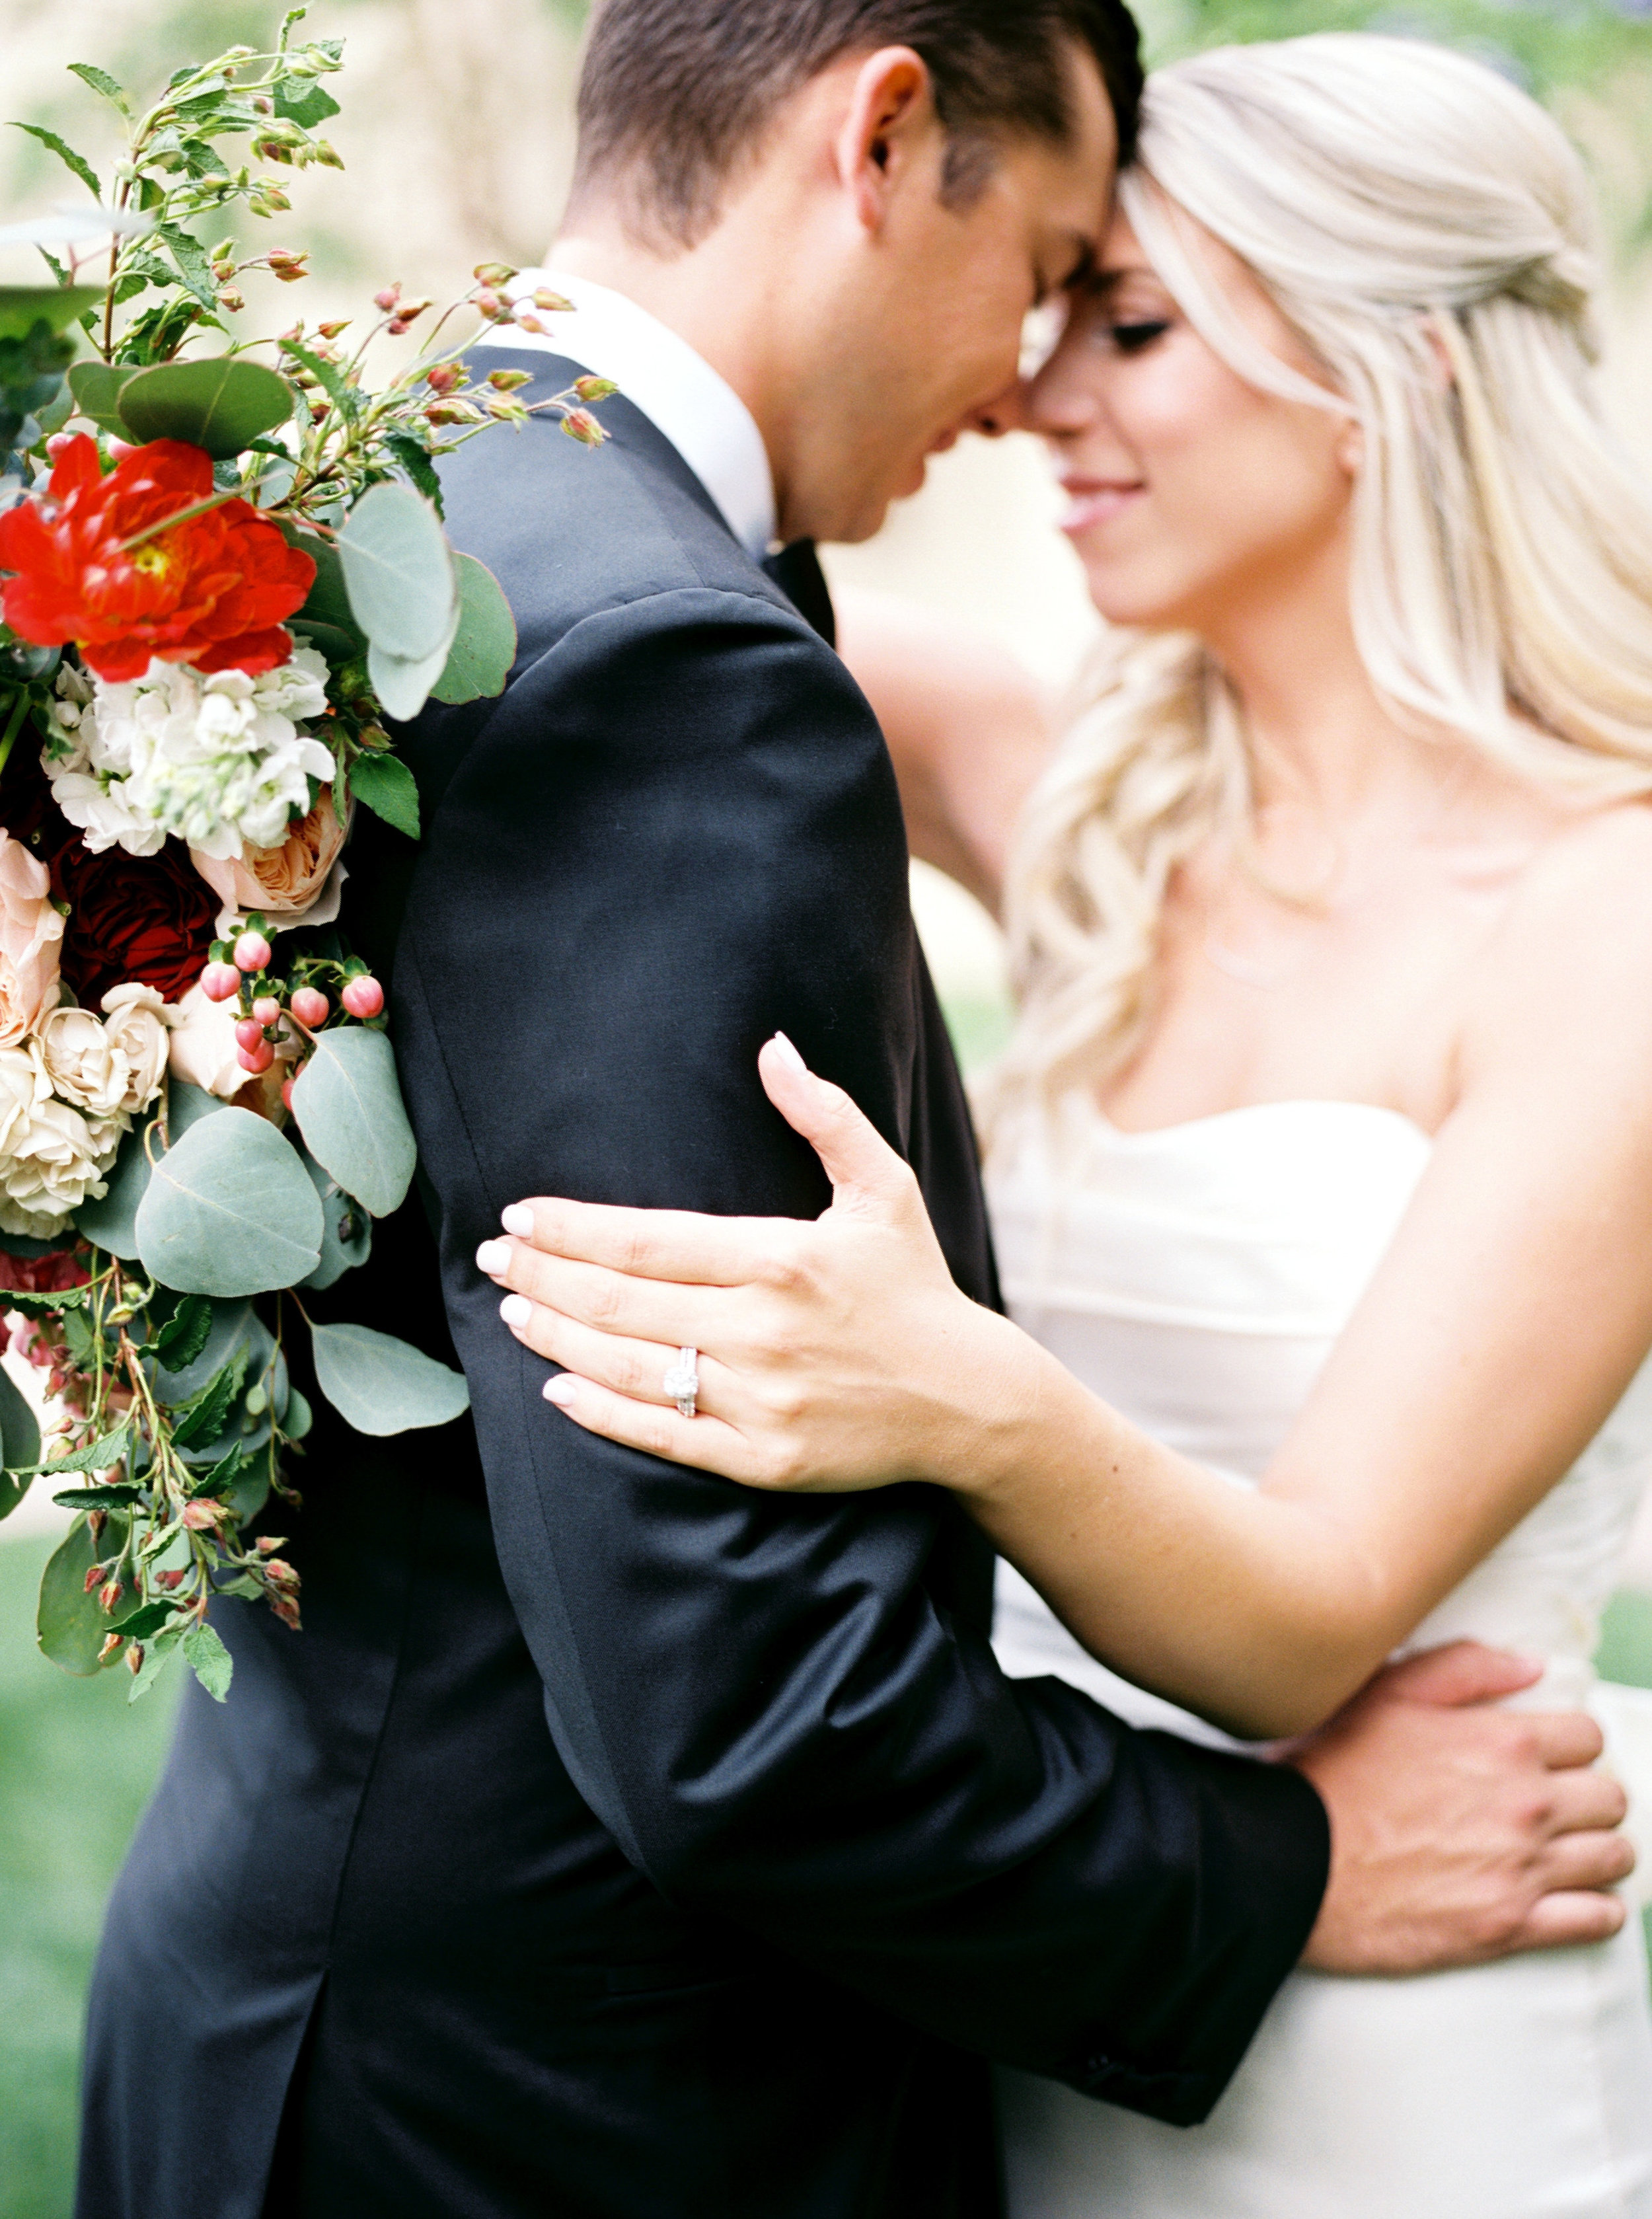 bride and groom photo, bride and groom details, groom tux, bridal gown, bridal bouquet, garden bridal bouquet, orange wedding flowers, red wedding flowers, blush wedding flowers, peach wedding flowers, ivory wedding flowers